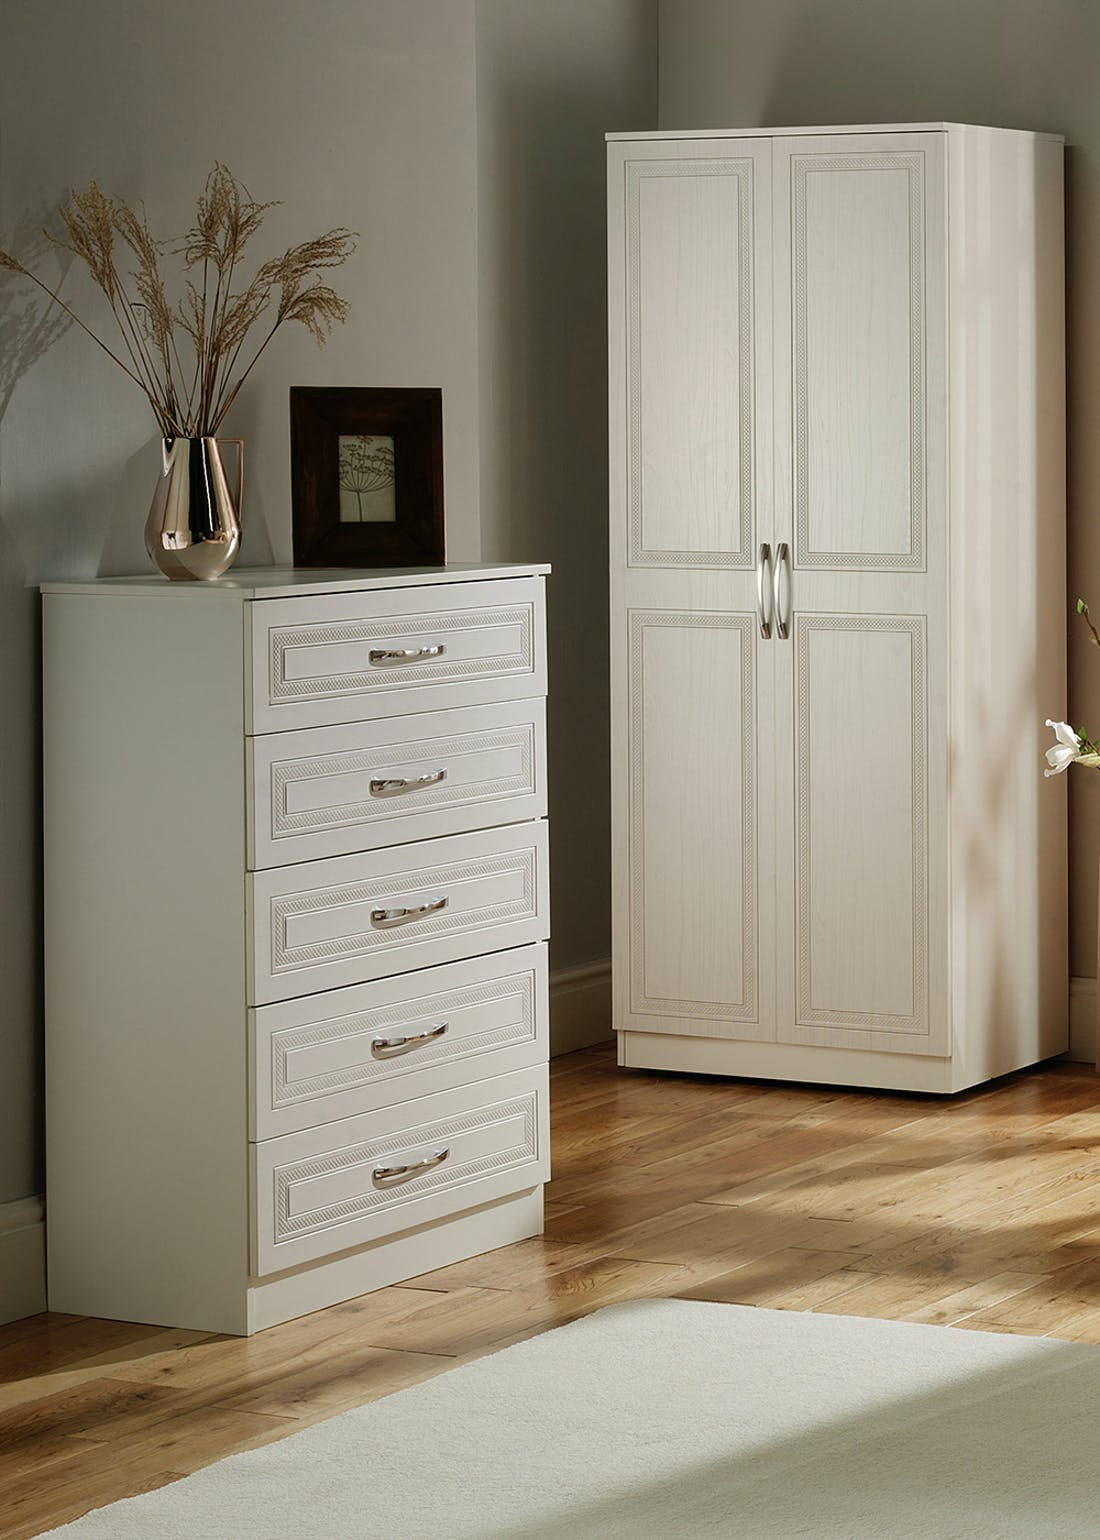 Swift Ashford 3 Piece Bedroom Furniture Collection